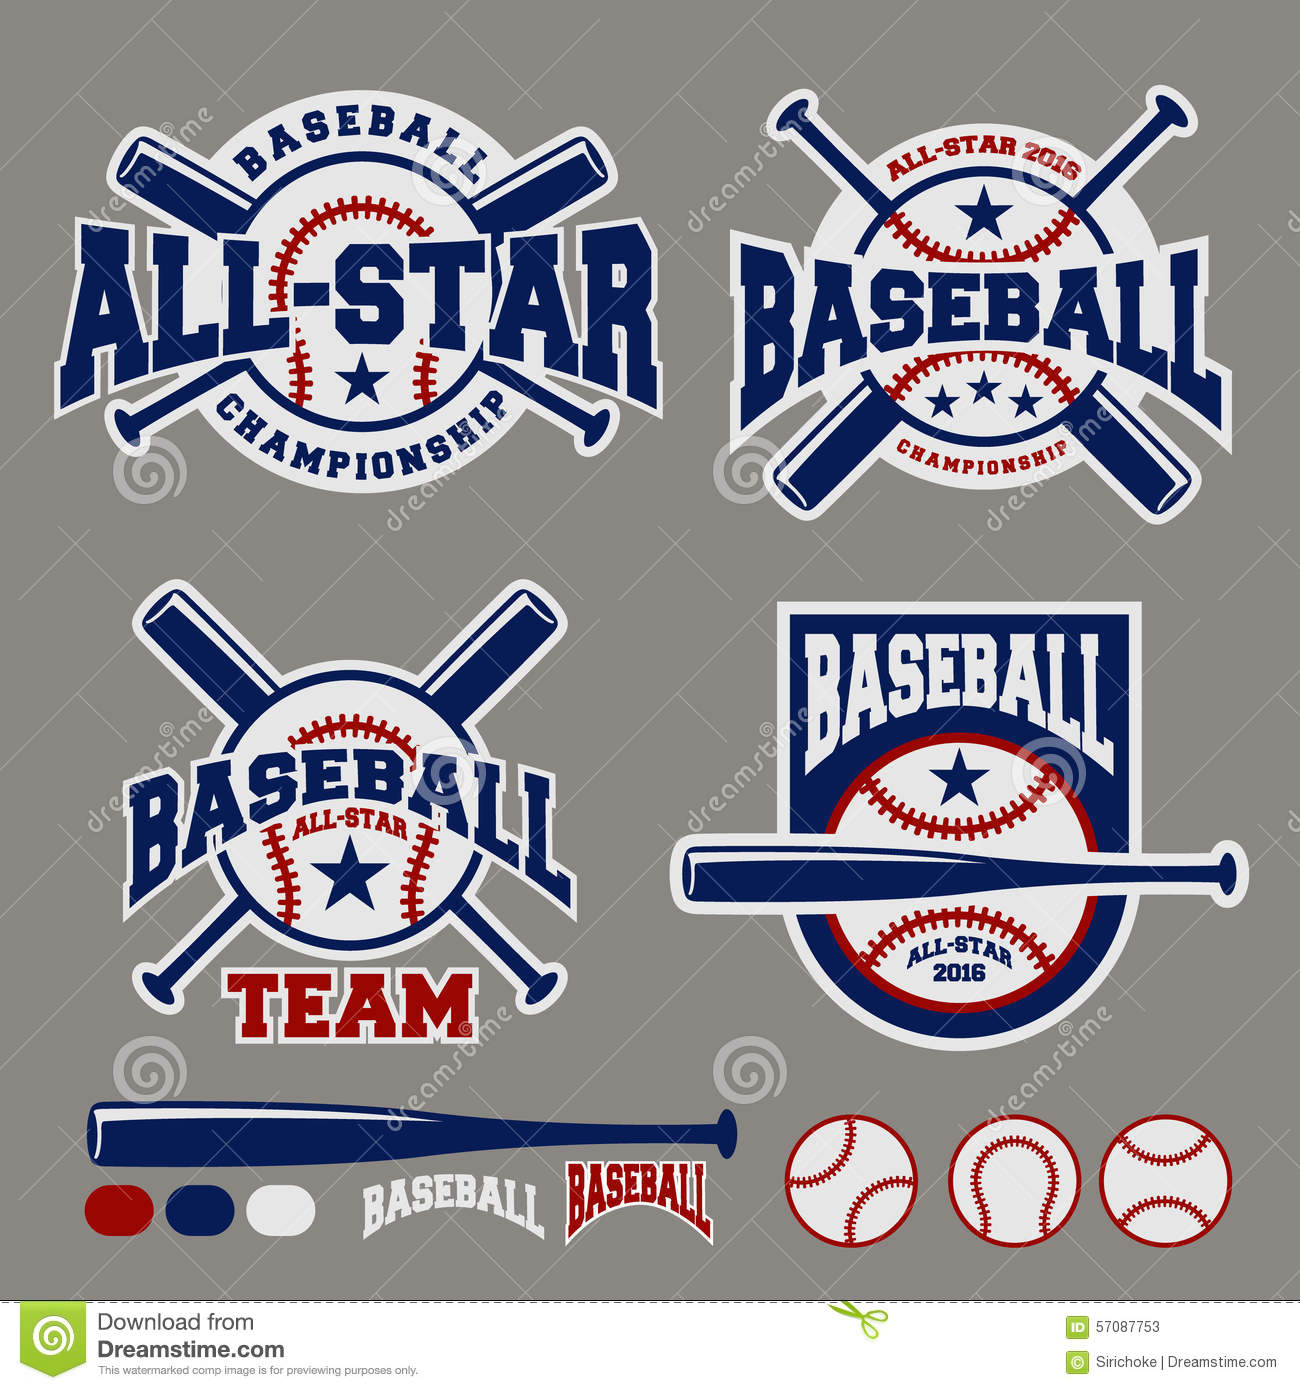 Design t shirt baseball - Design T Shirt Baseball More Similar Stock Images Of T Shirt Design Template Baseball C